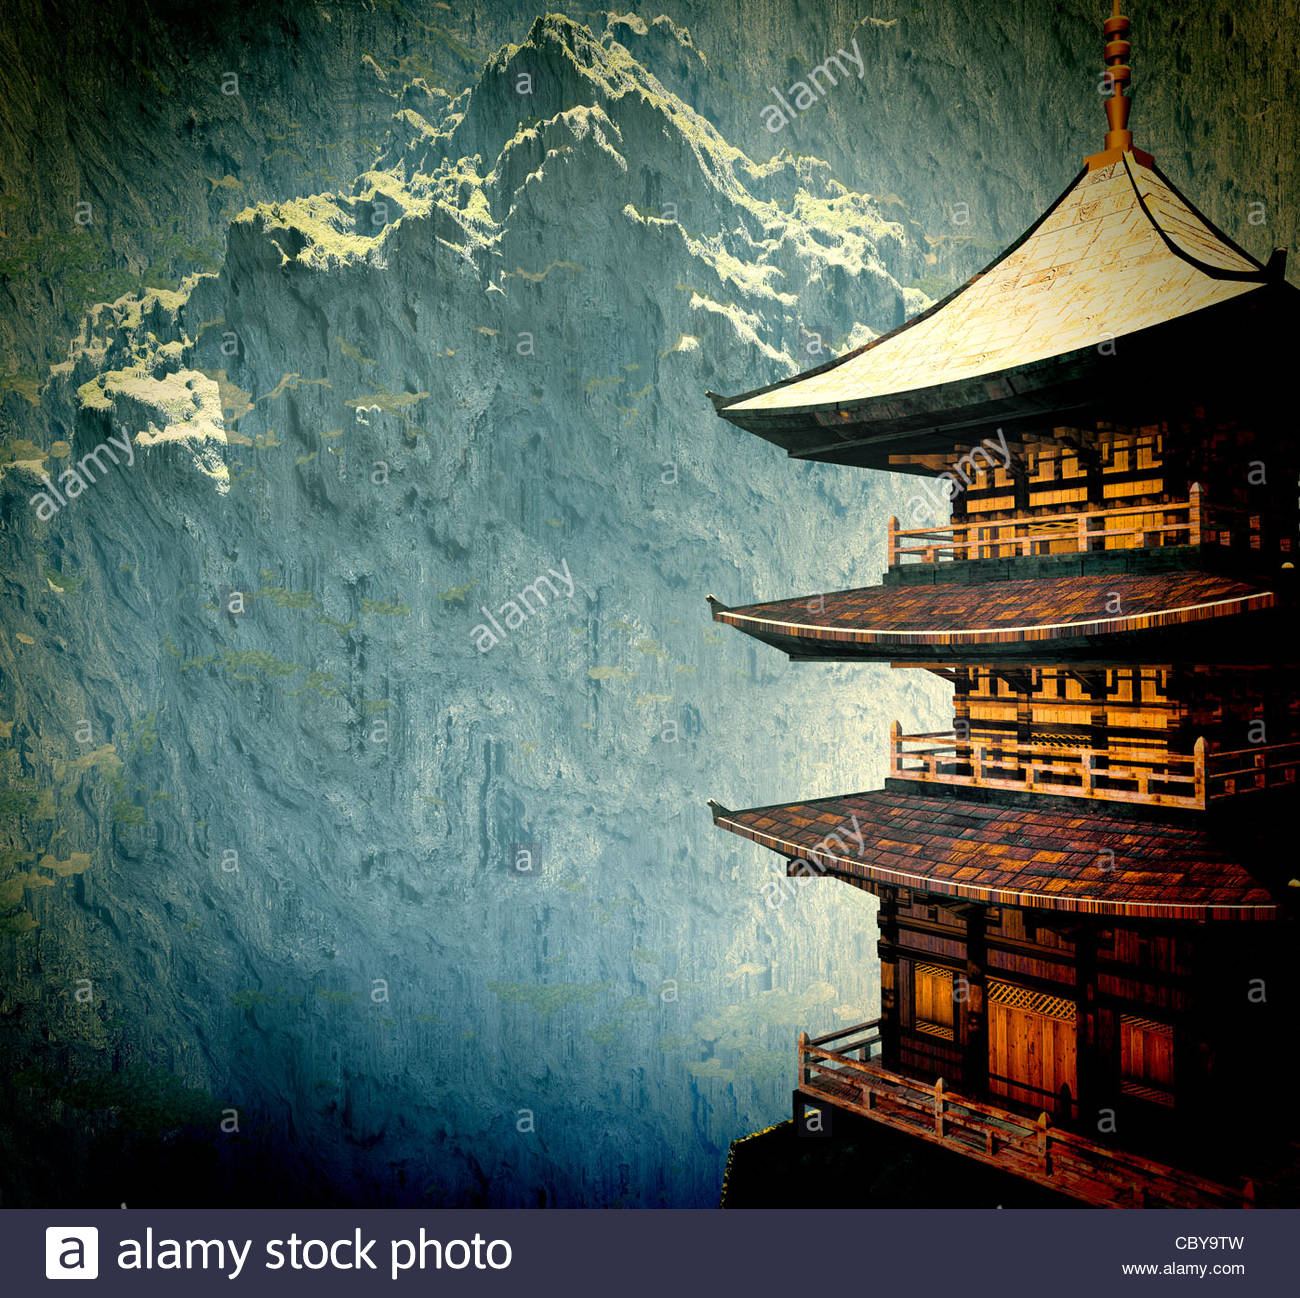 Zen buddhist temple in the mountains - Stock Image